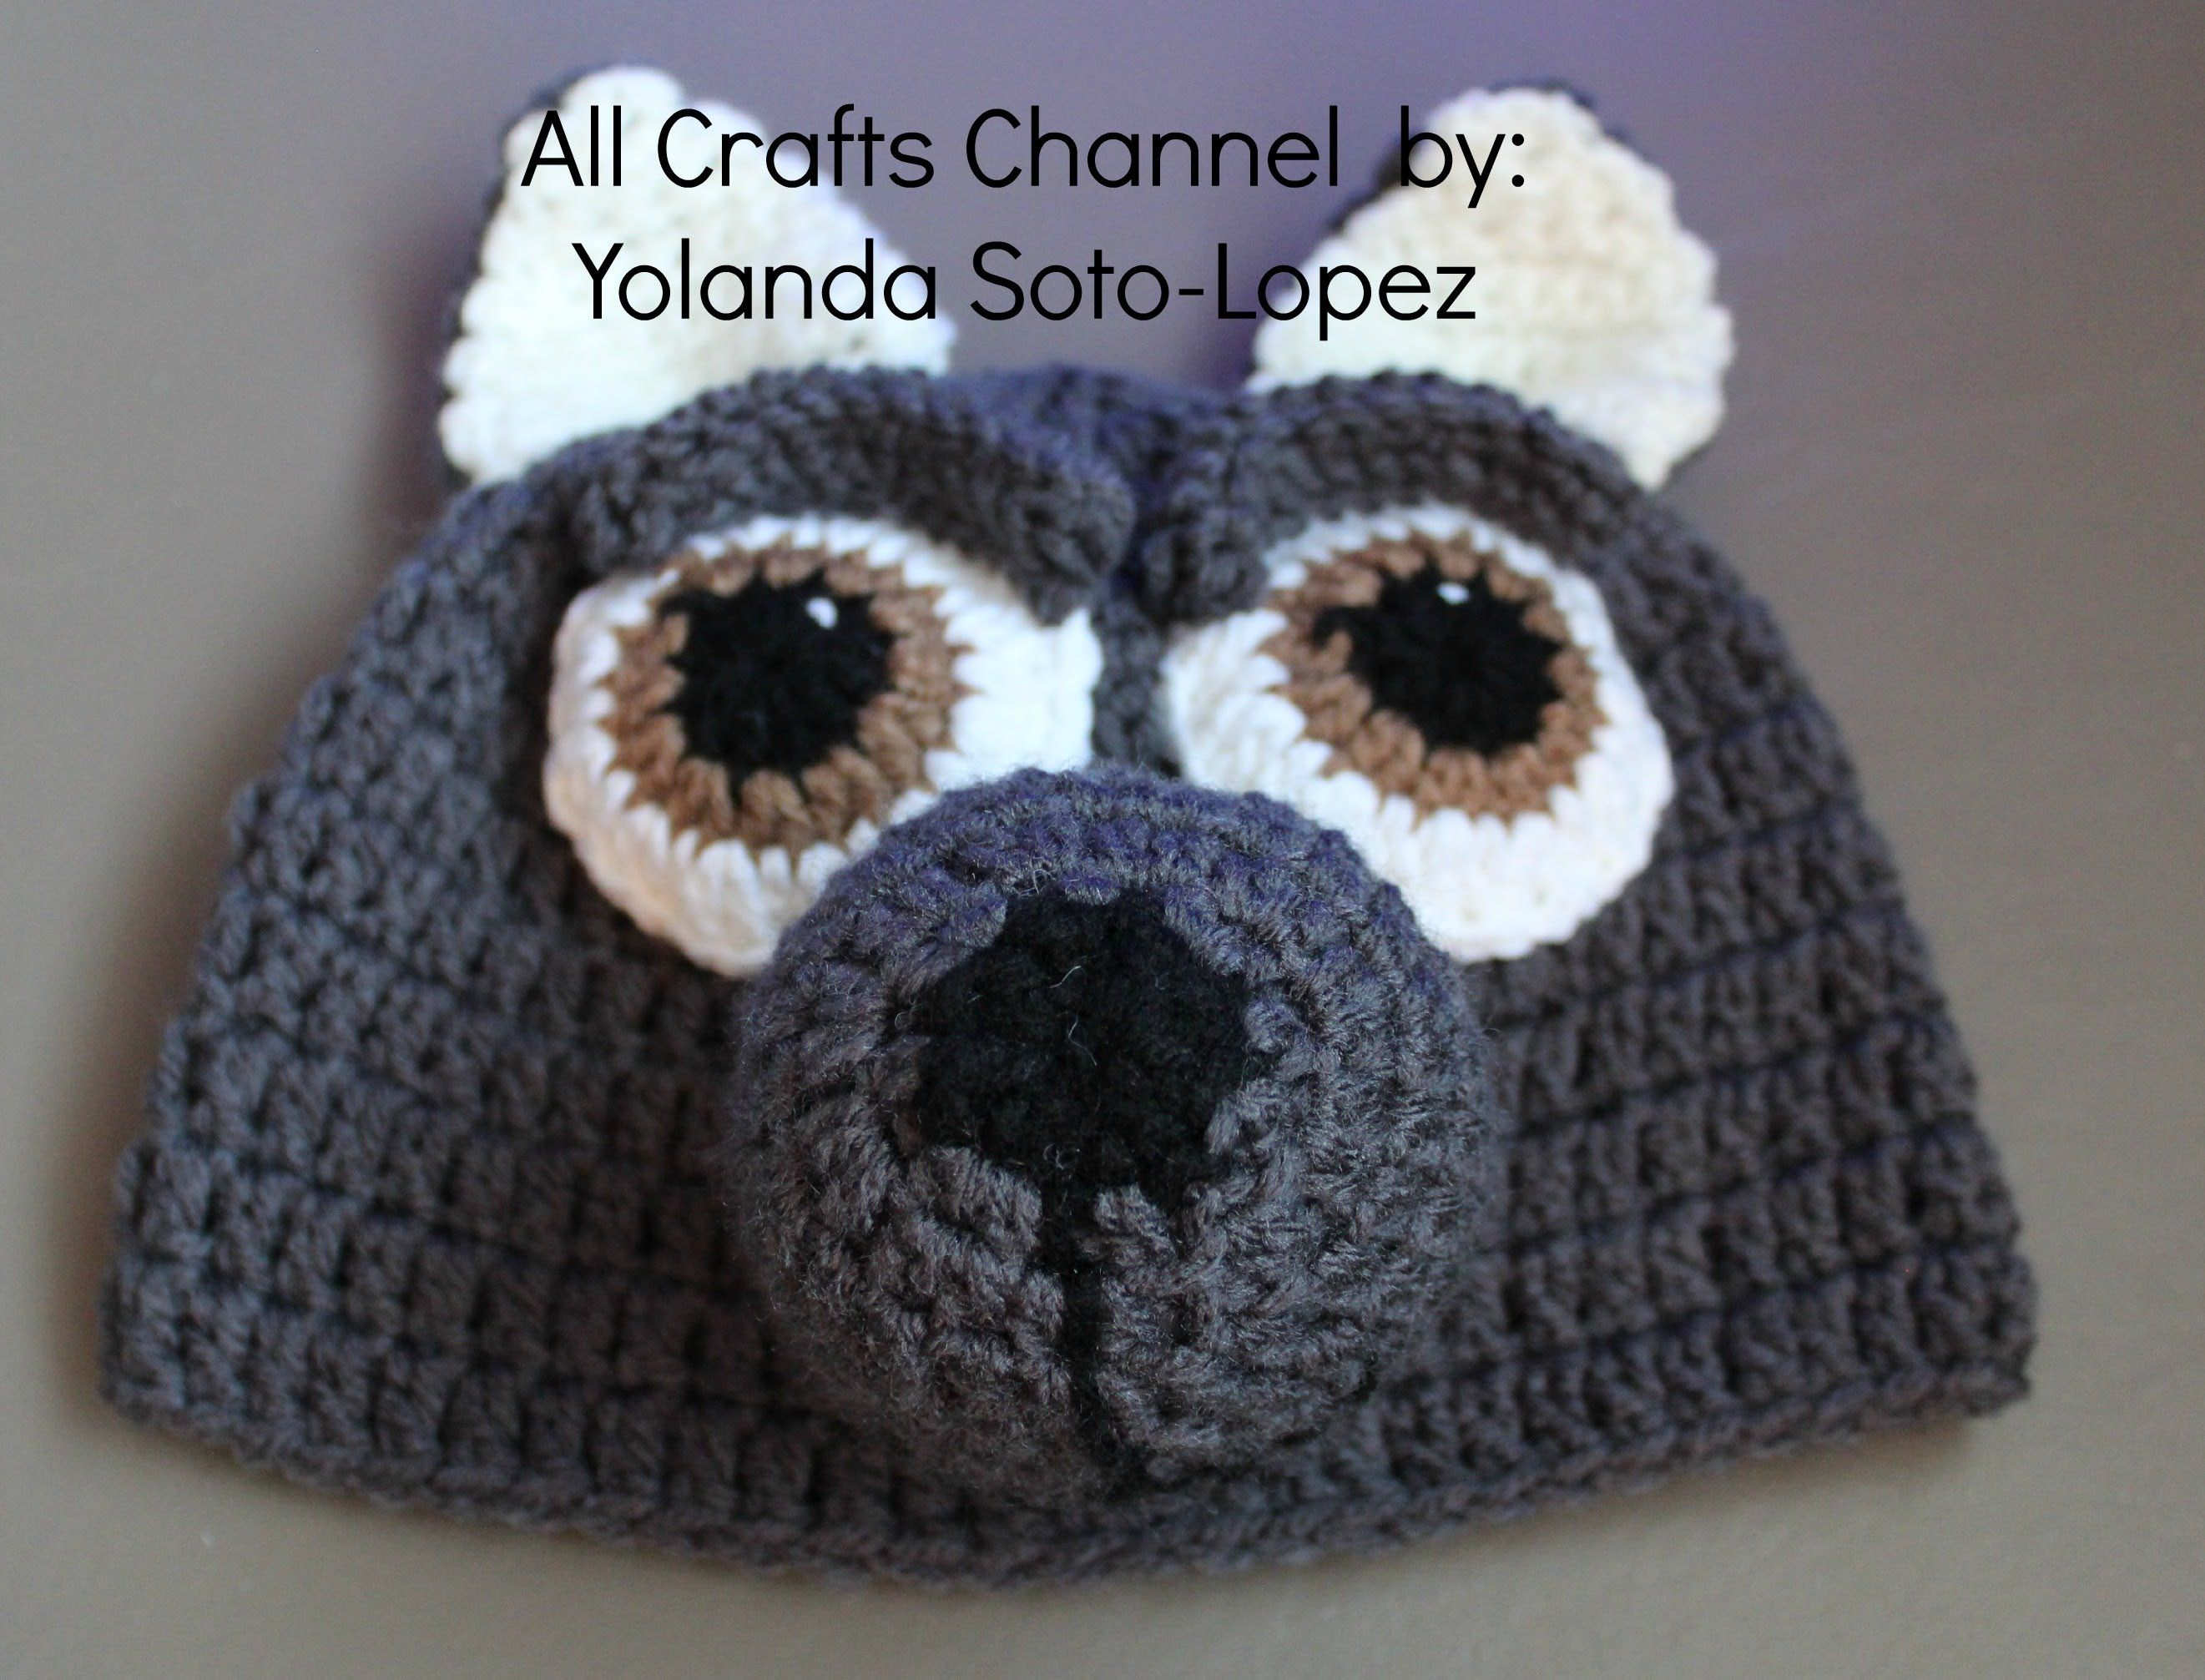 You too can crochet animal beanies fdd021808a8